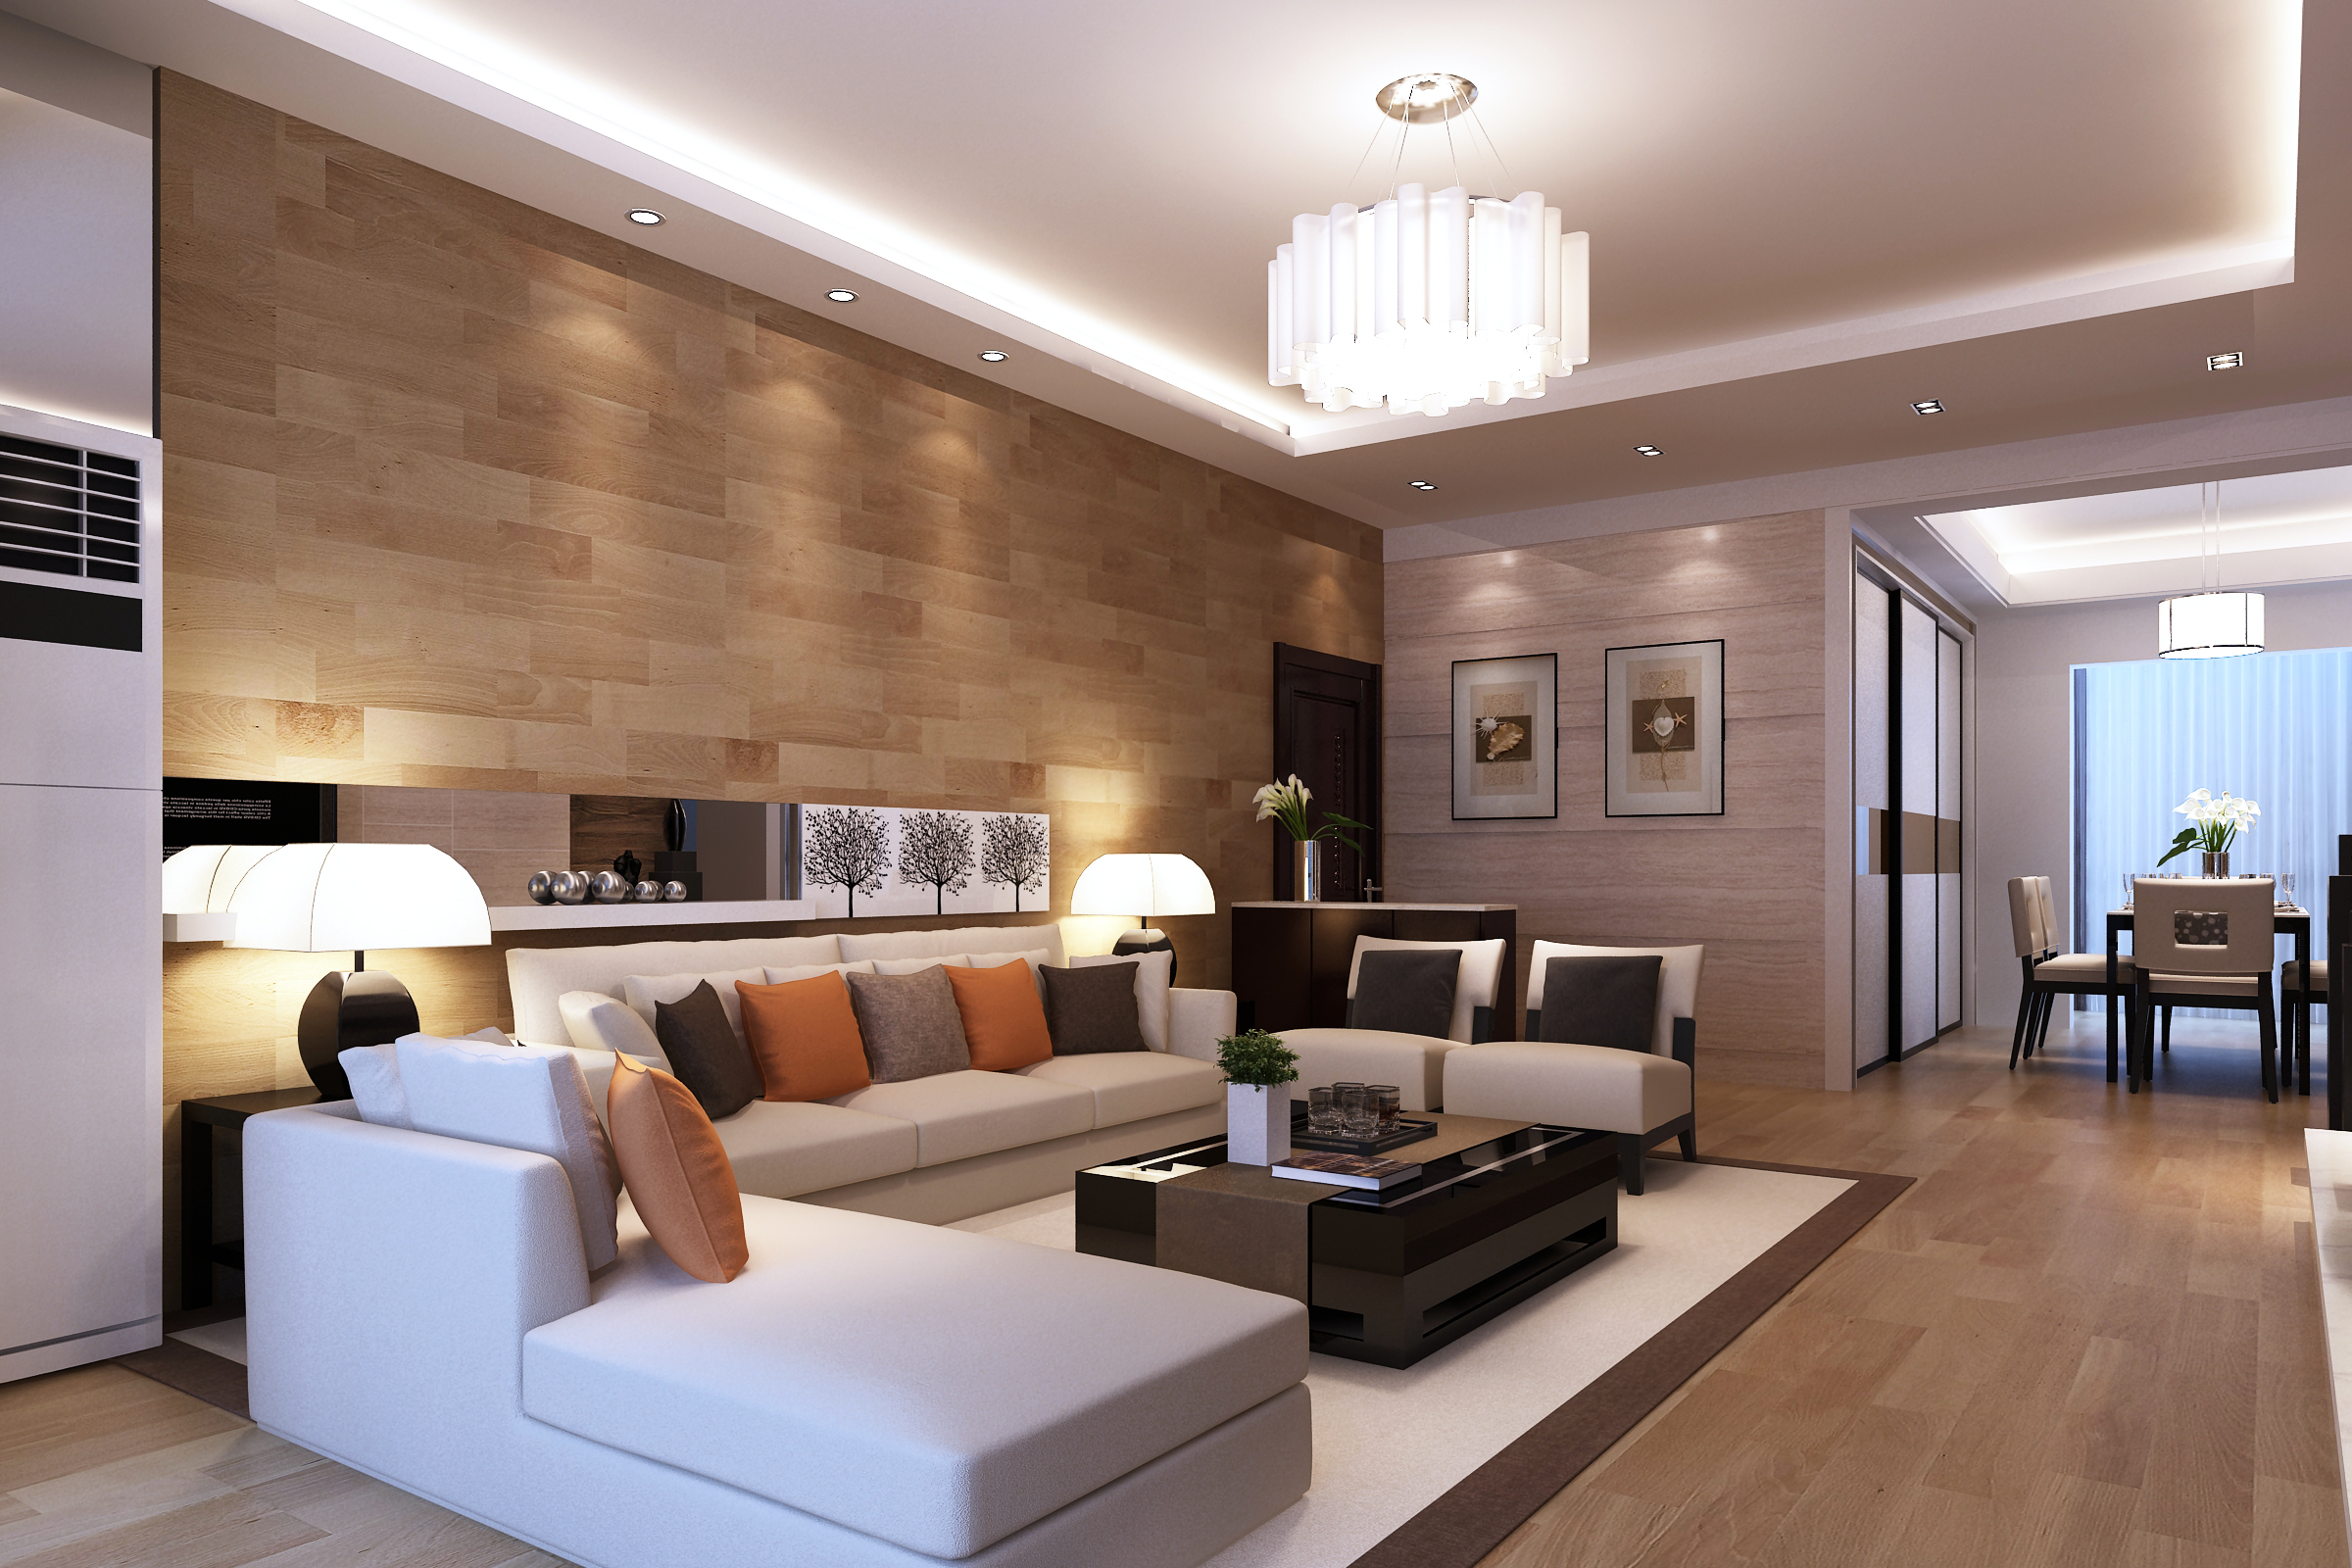 Exceptionnel Modern Living Room 3d Model Max 1 ...